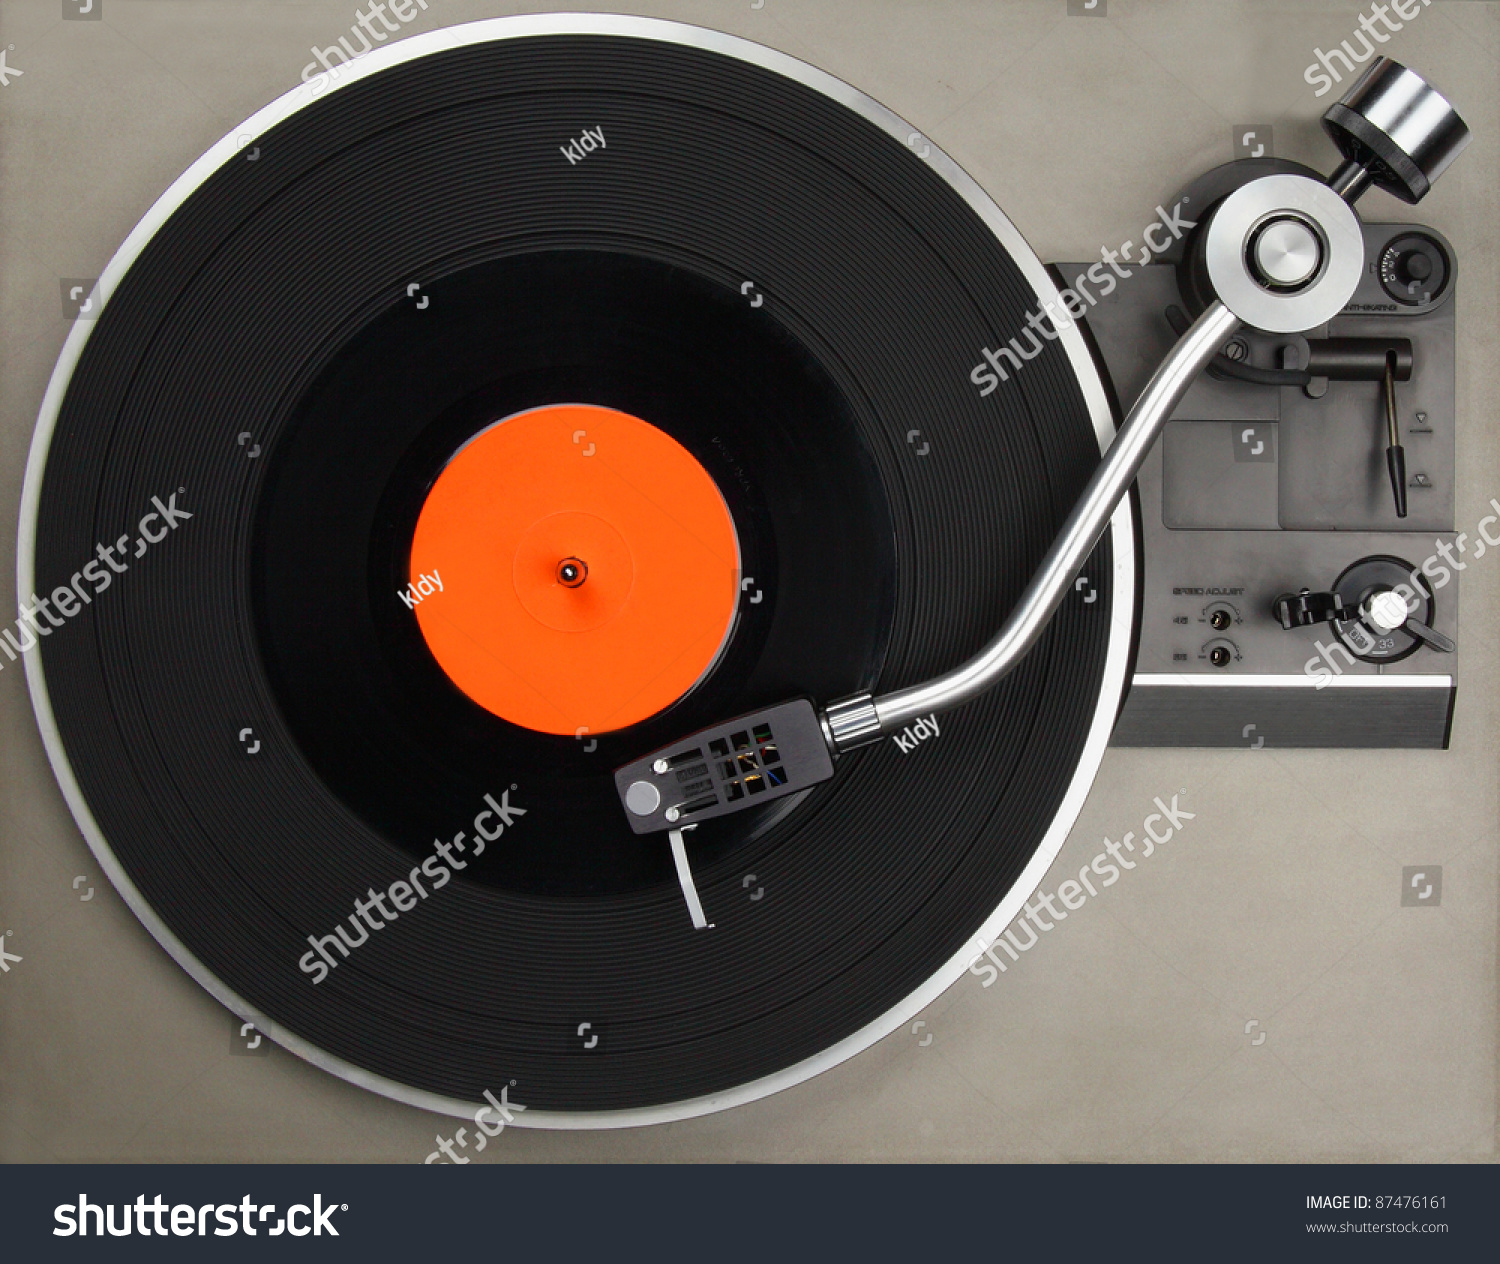 Vintage Record Player With Vinyl Record Stock Photo 87476161